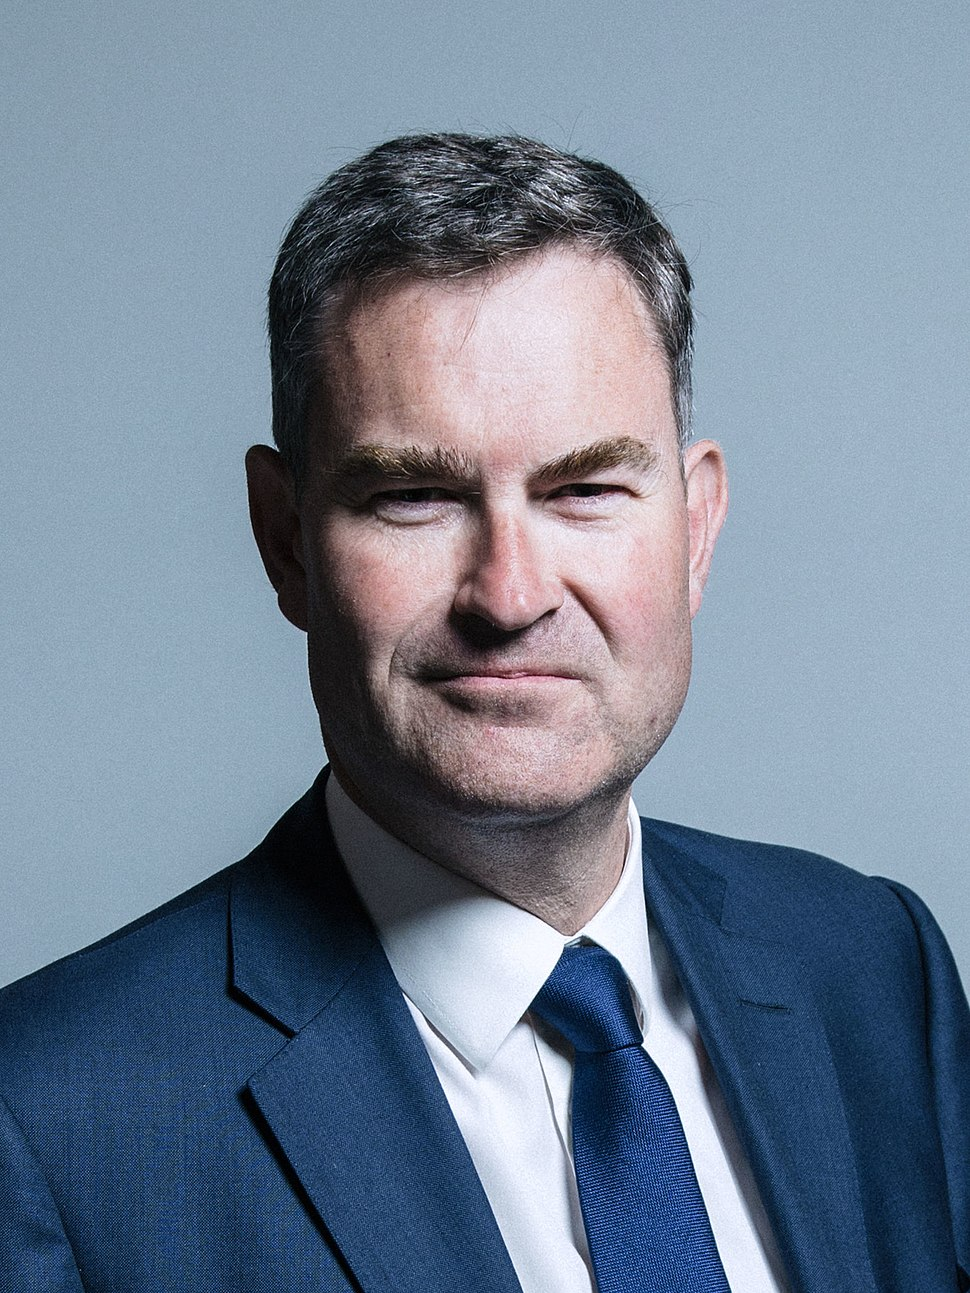 Official portrait of Mr David Gauke crop 2